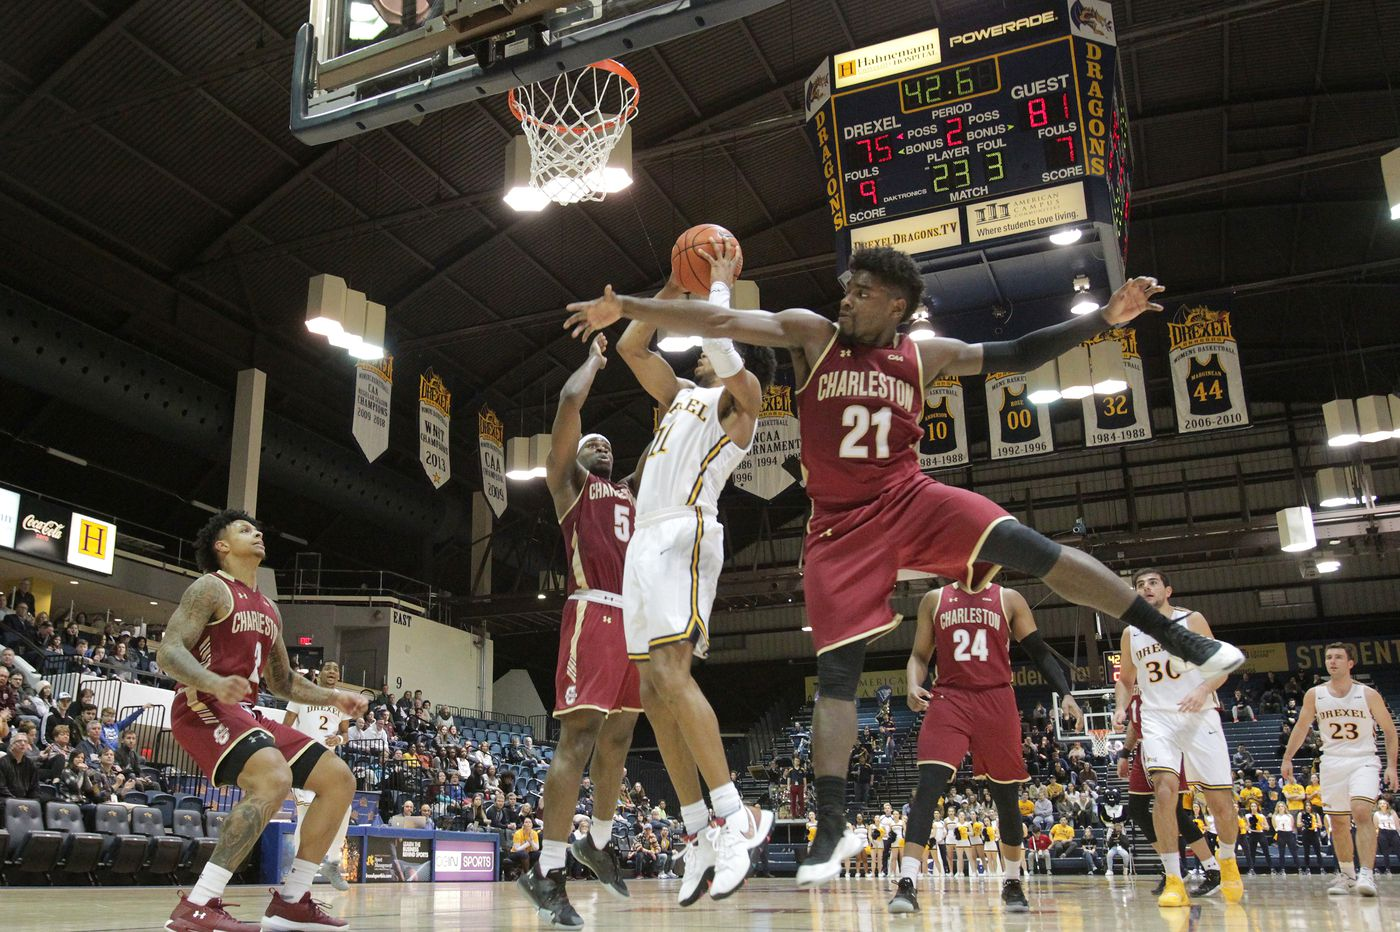 Drexel's season ends with loss to College of Charleston in CAA tournament